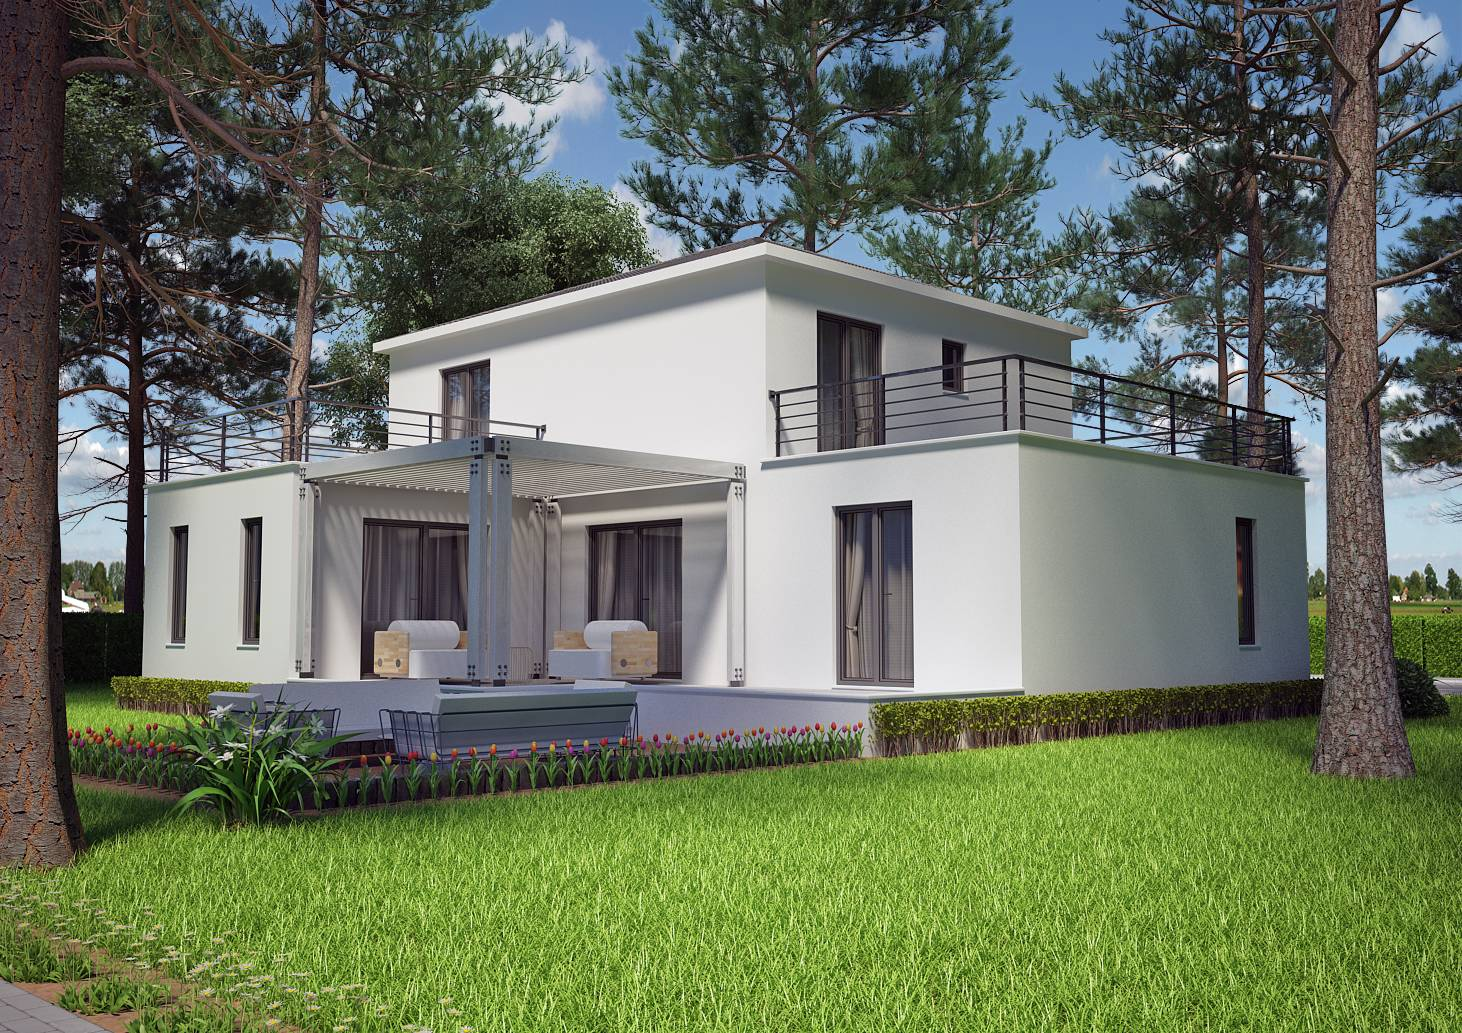 Villa contemporaine 130m2 etage mod le lavande salon for Model de construction maison